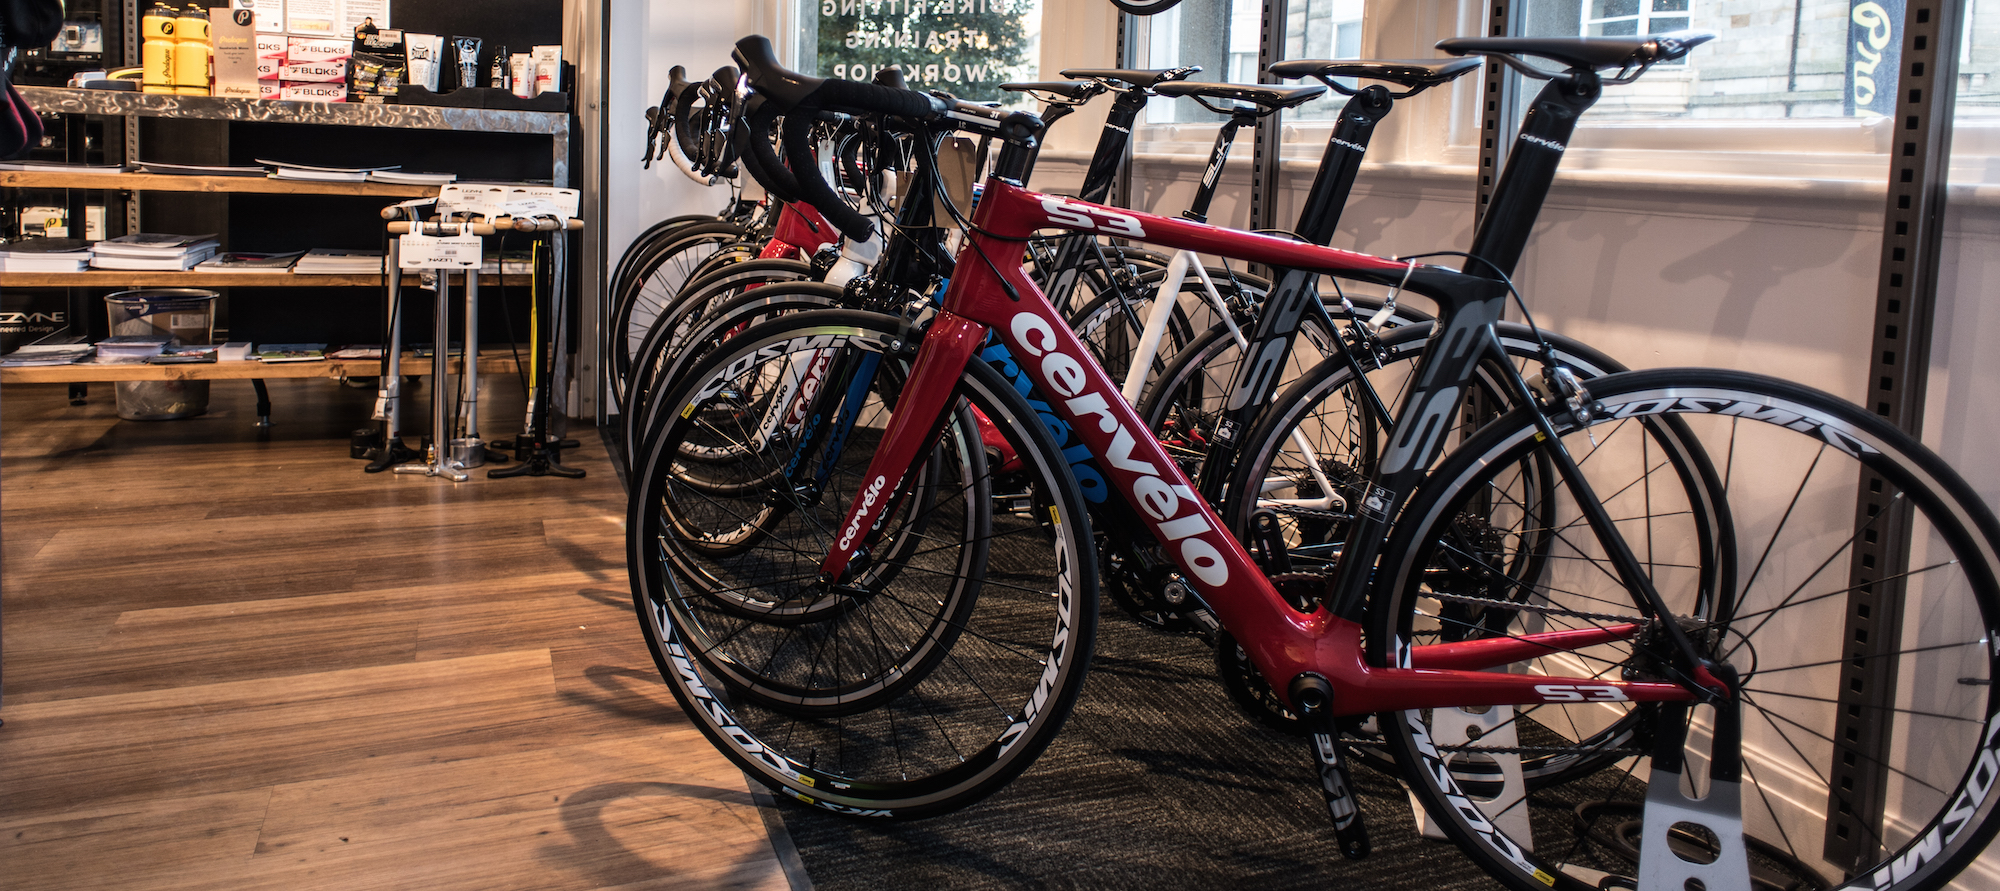 Black Friday cycling deals 2017  The best bike and accessory sales - Cycling  Weekly 6ffc59cd8